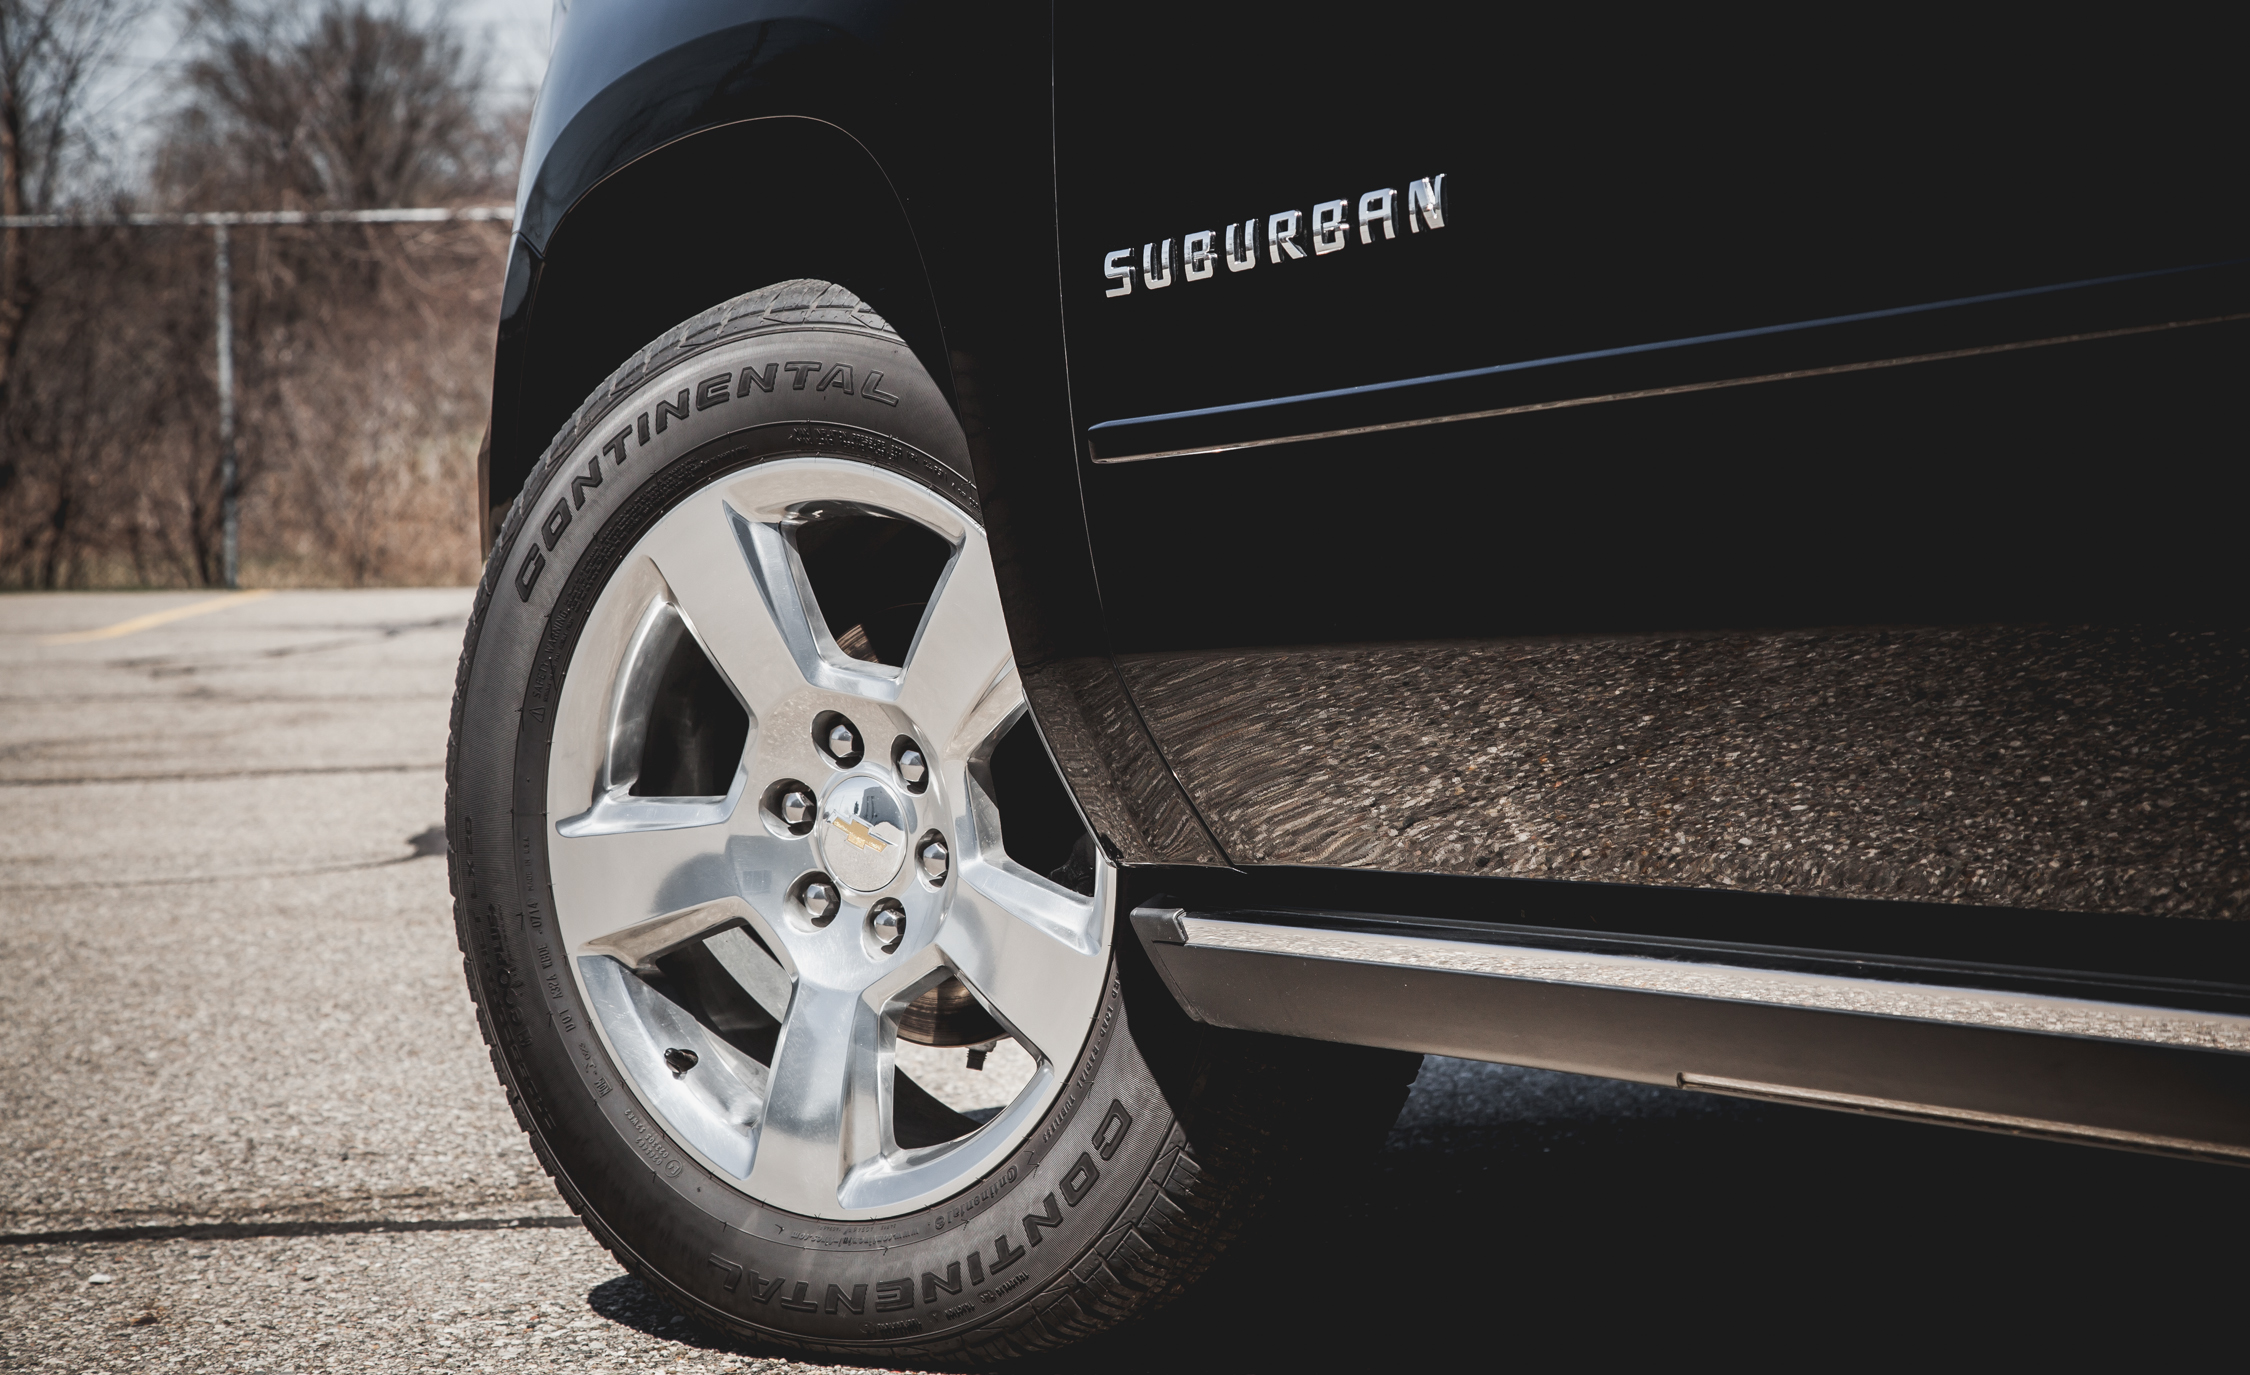 2015 Chevrolet Suburban LTZ Wheel And Badge (Photo 27 of 33)